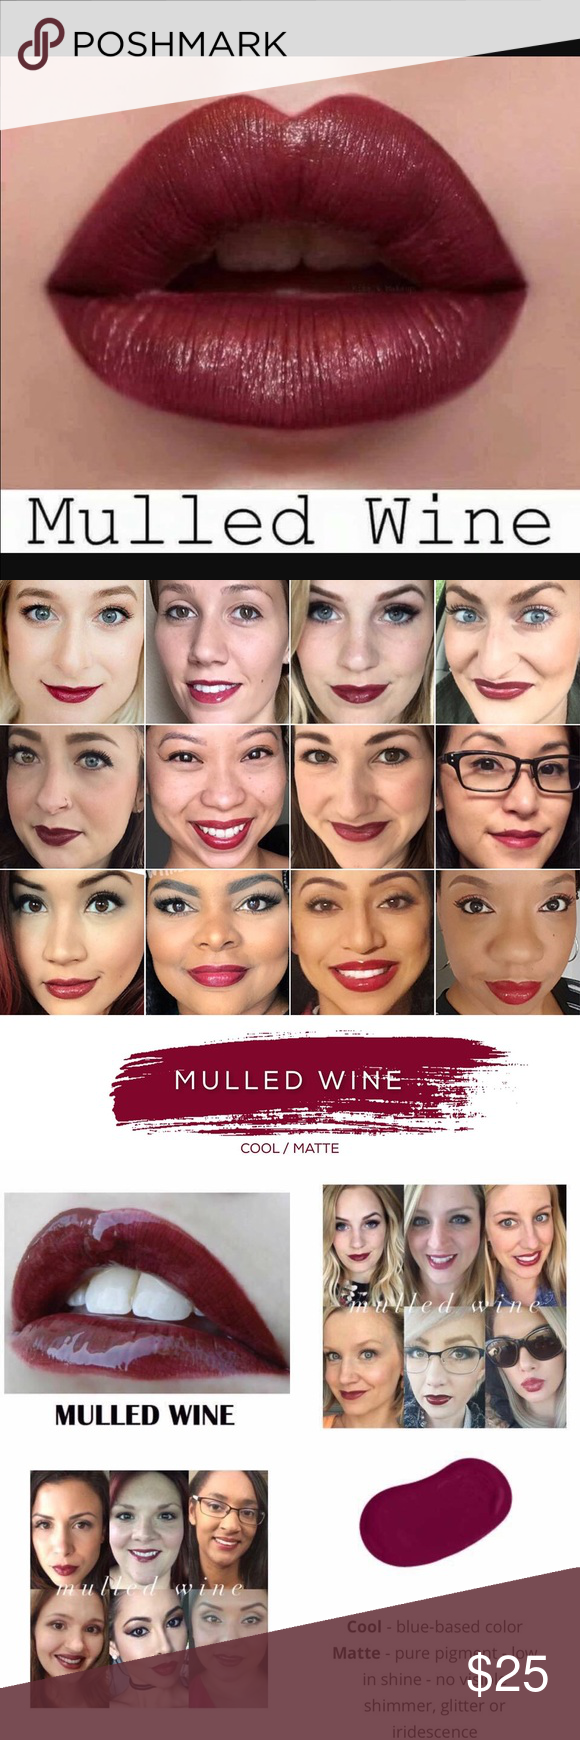 Lipsense mulled wine mulled wine lip color by lipsense price is